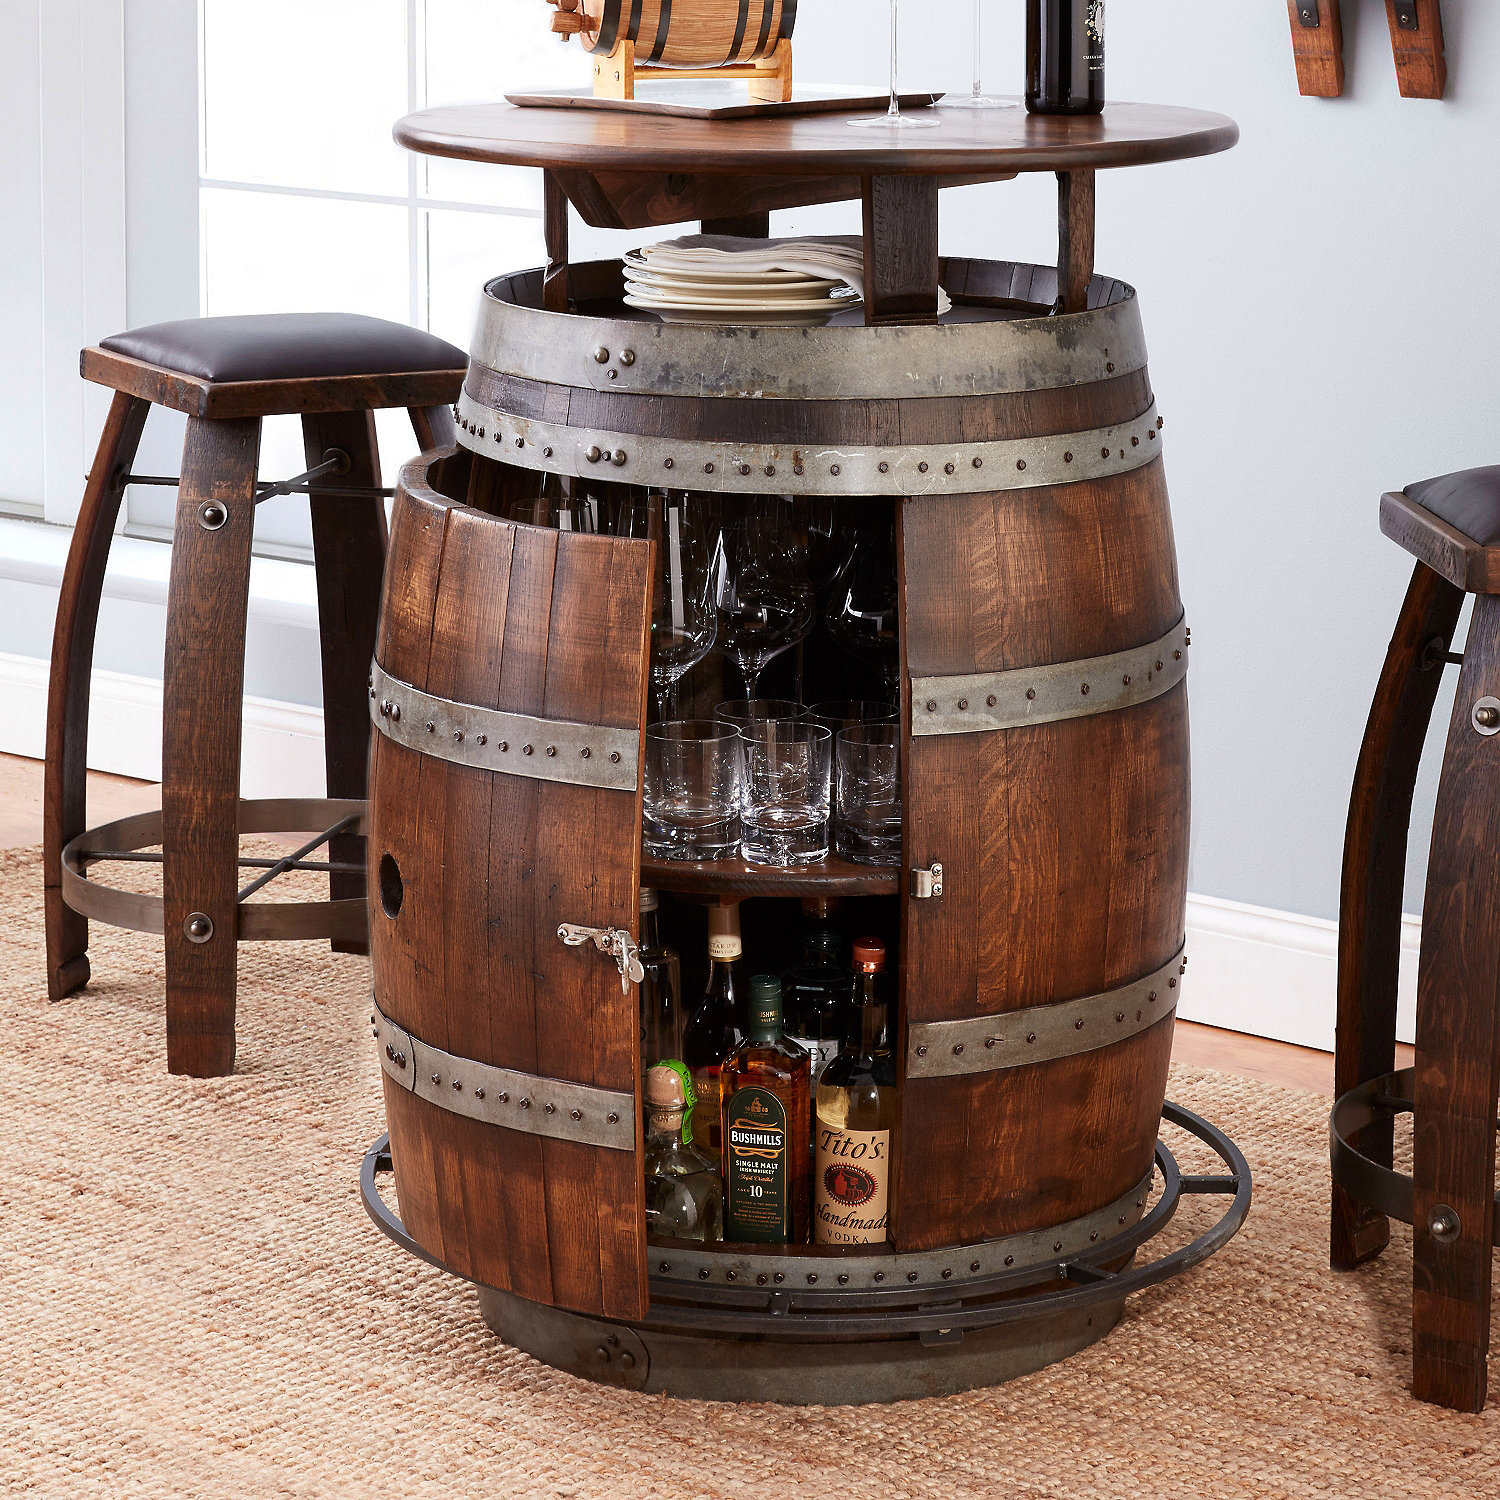 How to take care of your wine barrel furniture